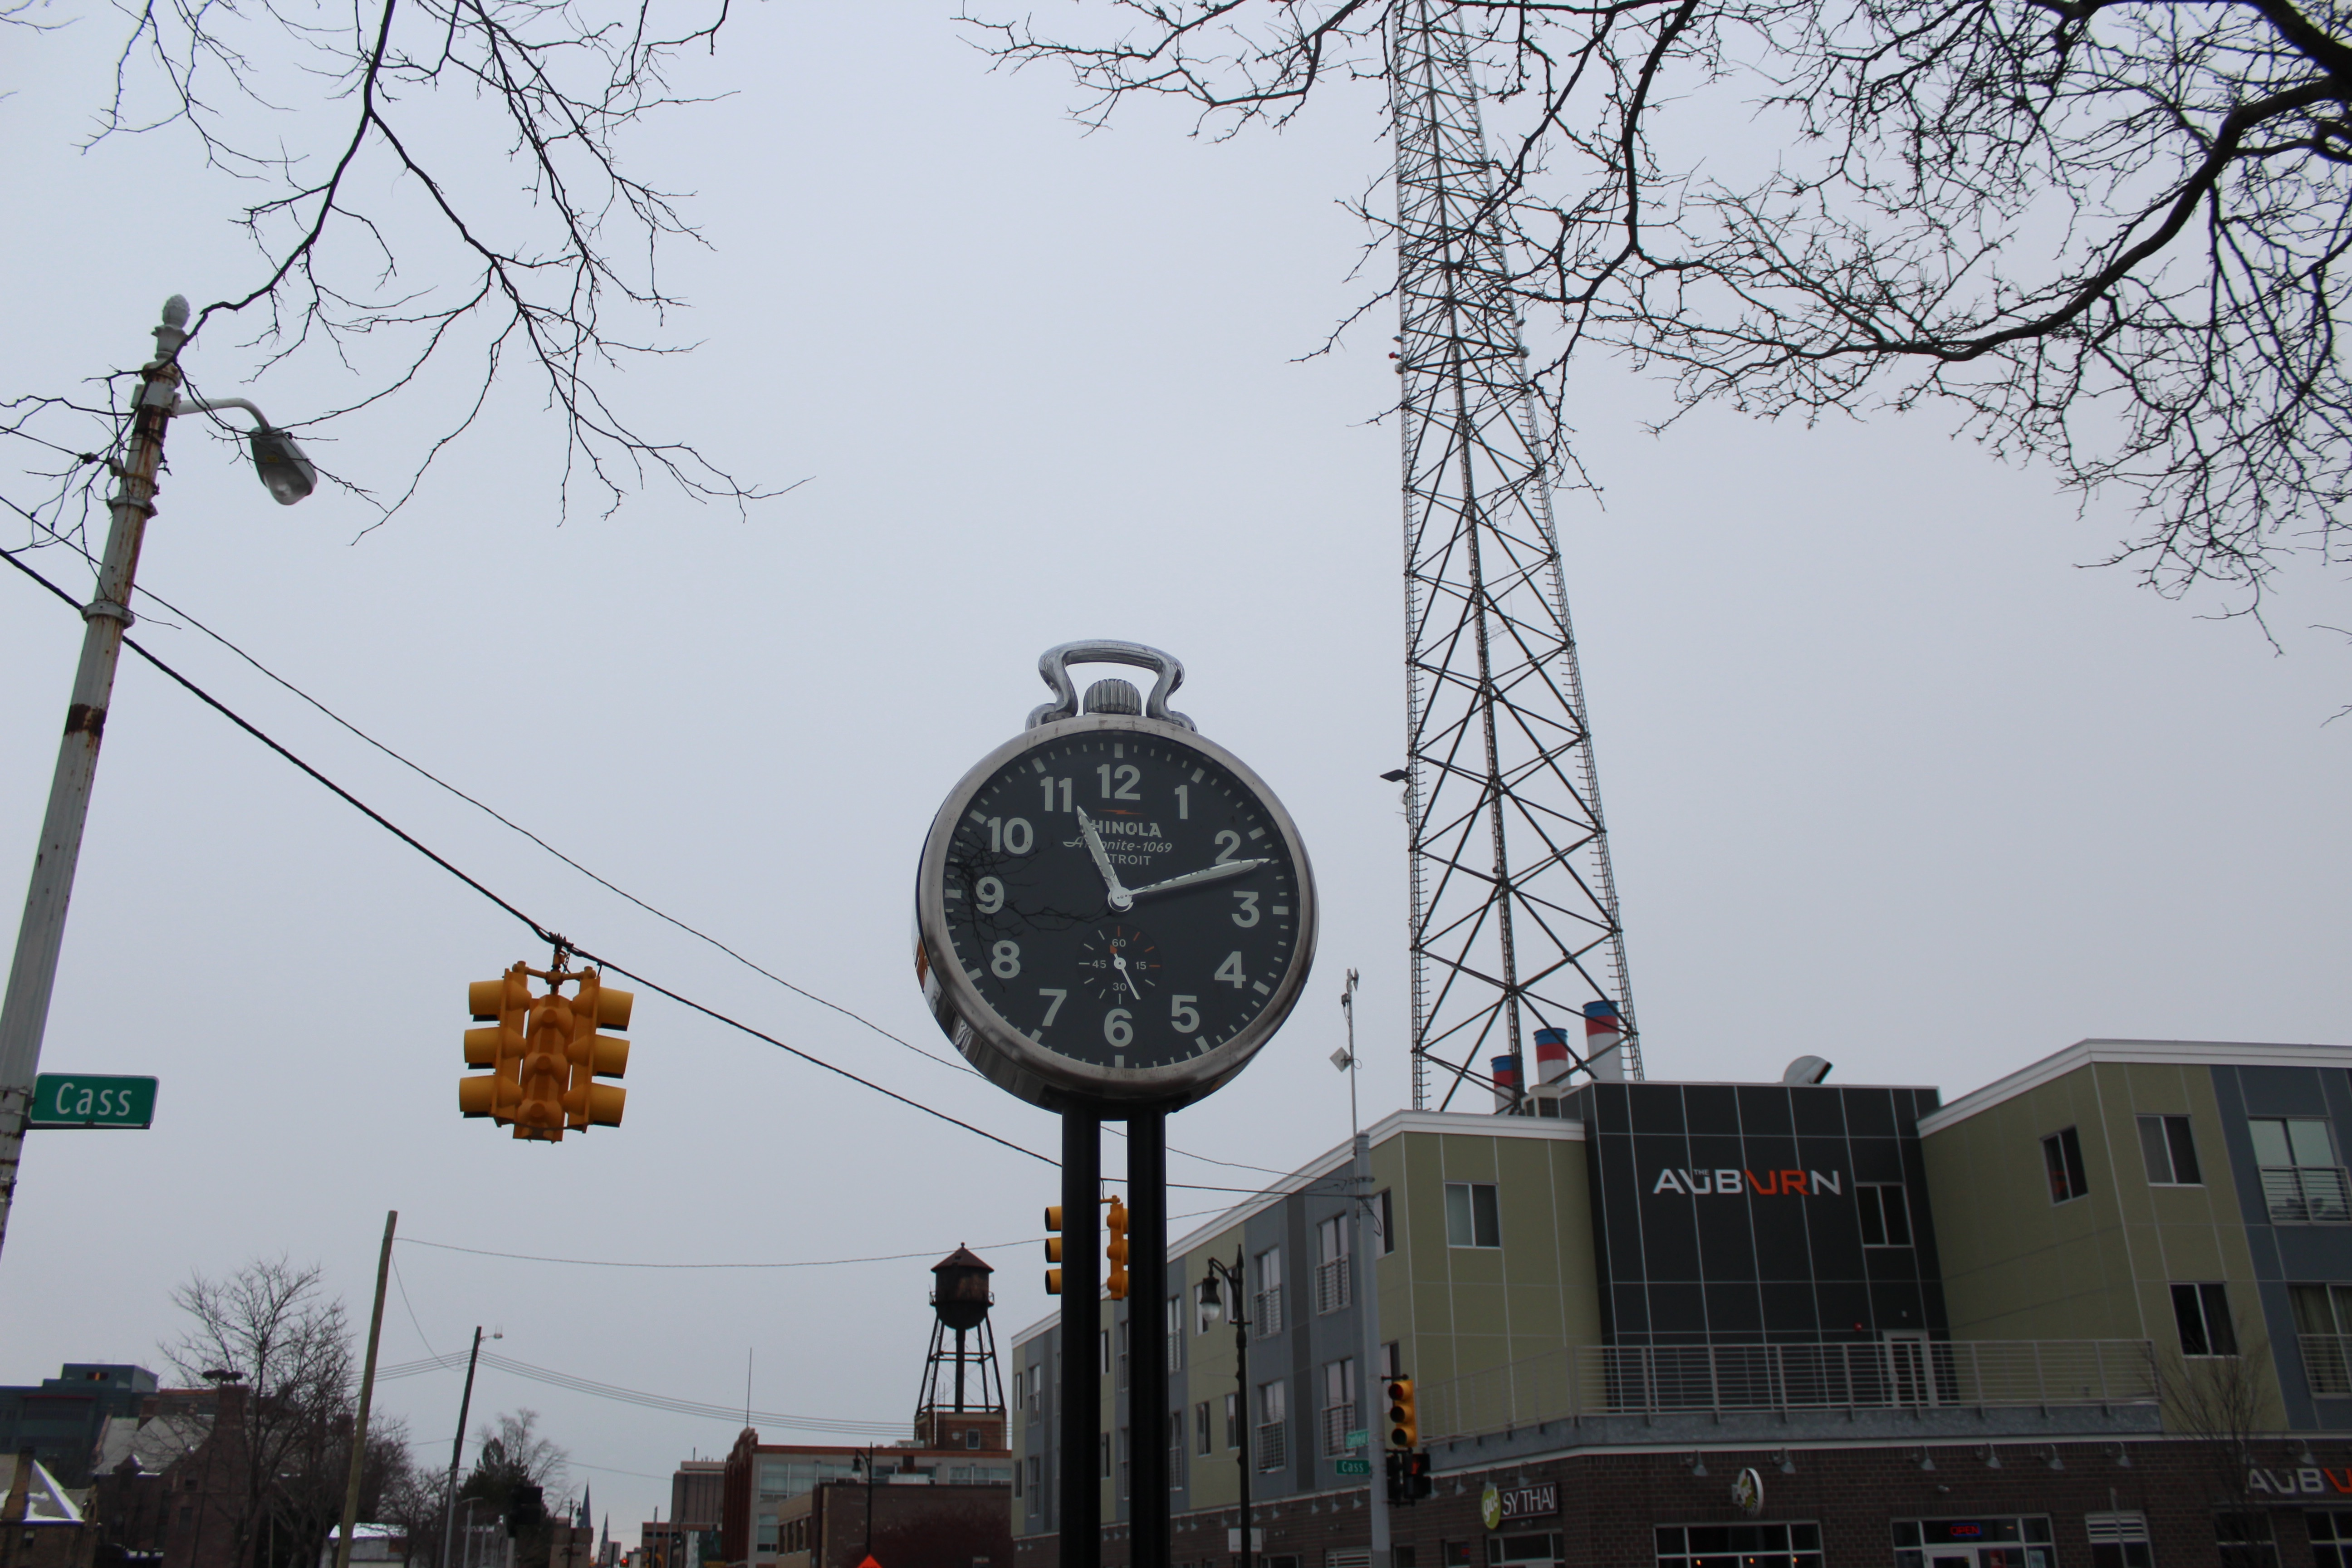 Shinola clock at the Shinola dog park in Midtown Detroit.